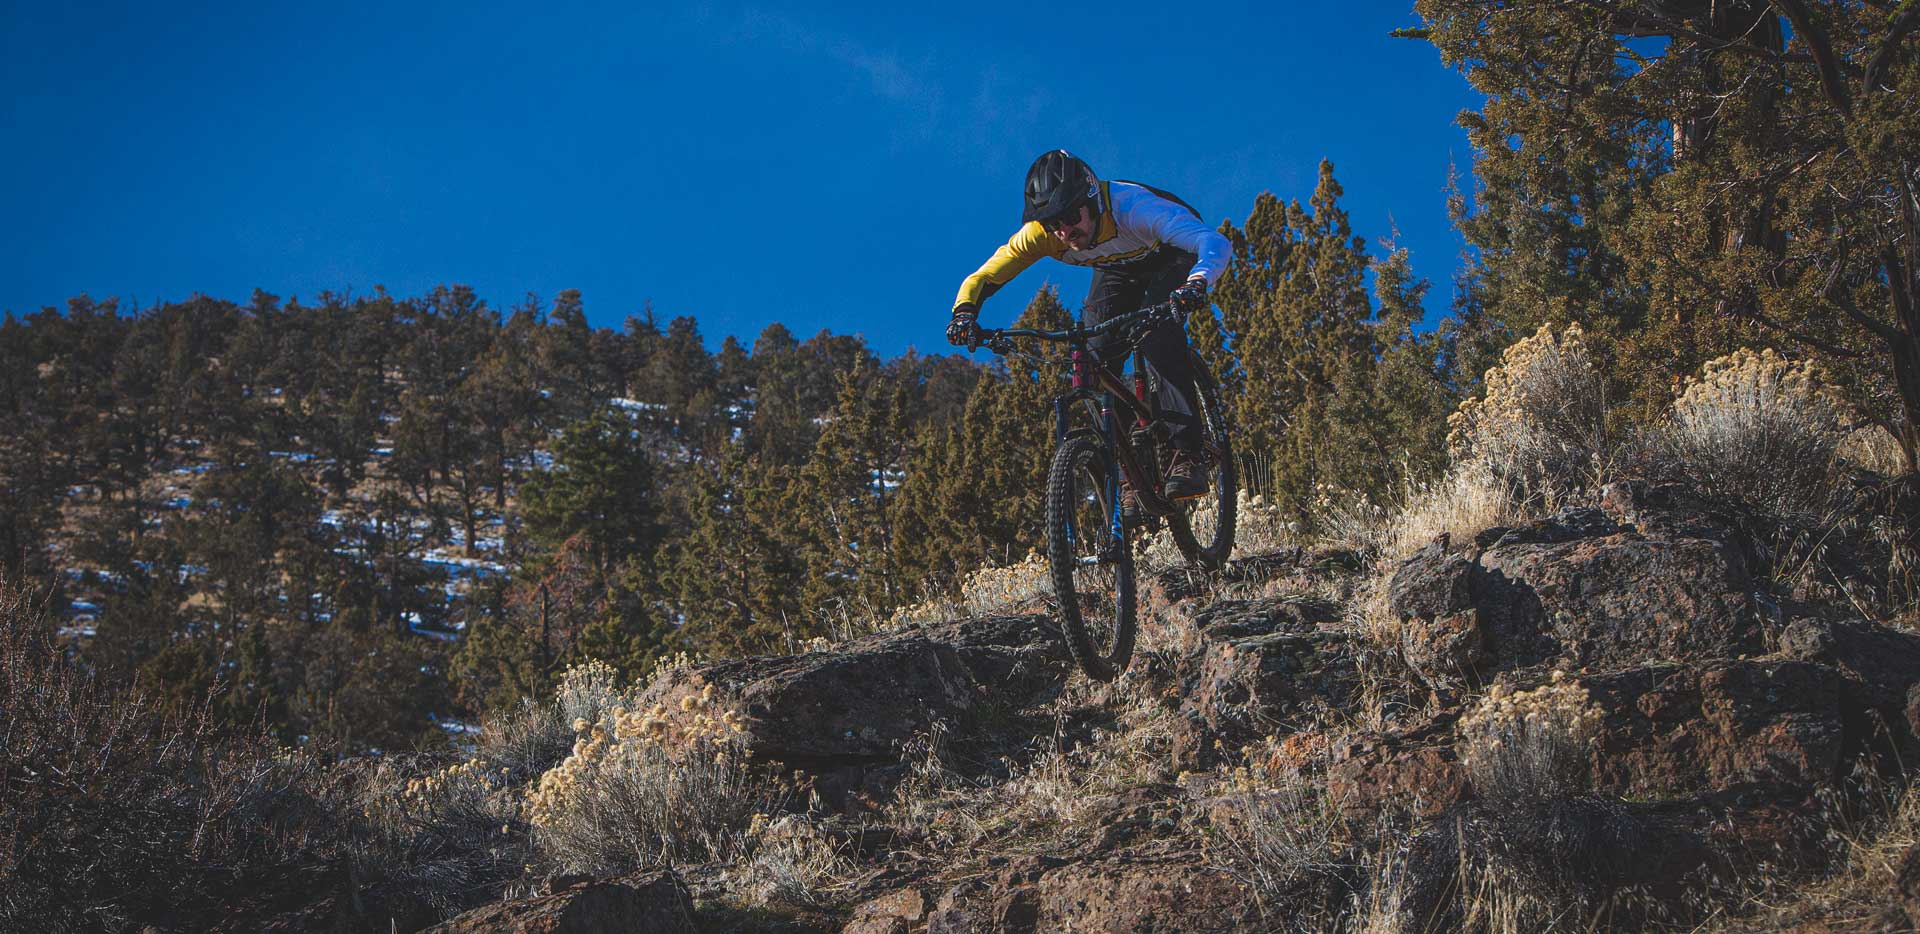 2020 Norco Sight on trail